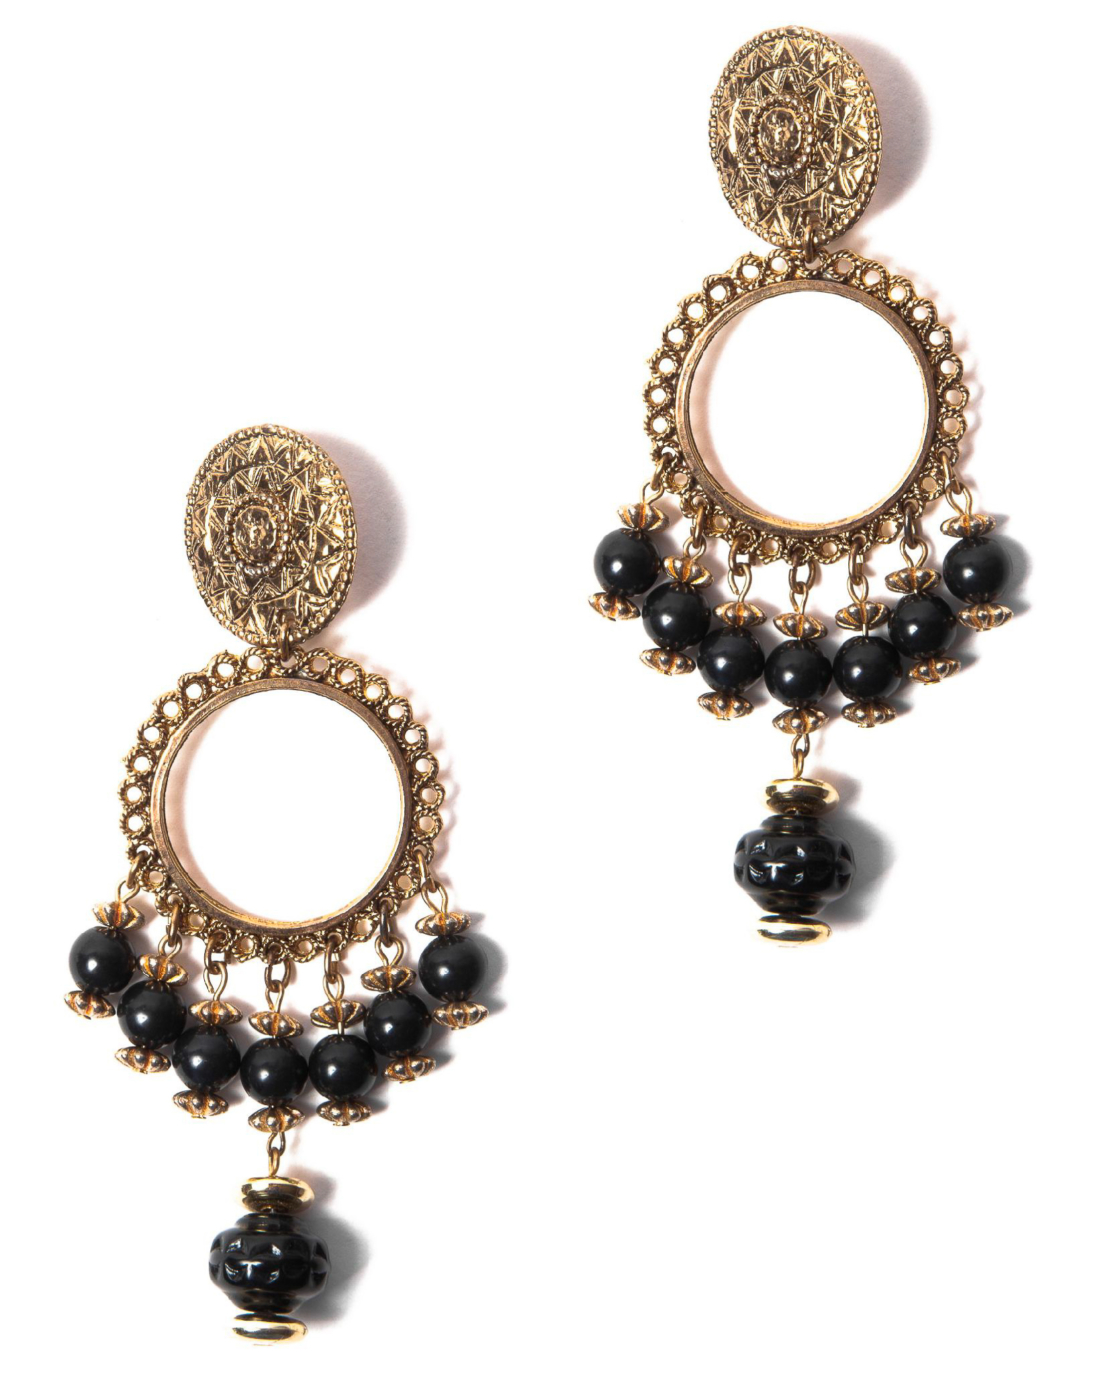 Black and Gold Beaded Gypsy Earrings, circa 1970's